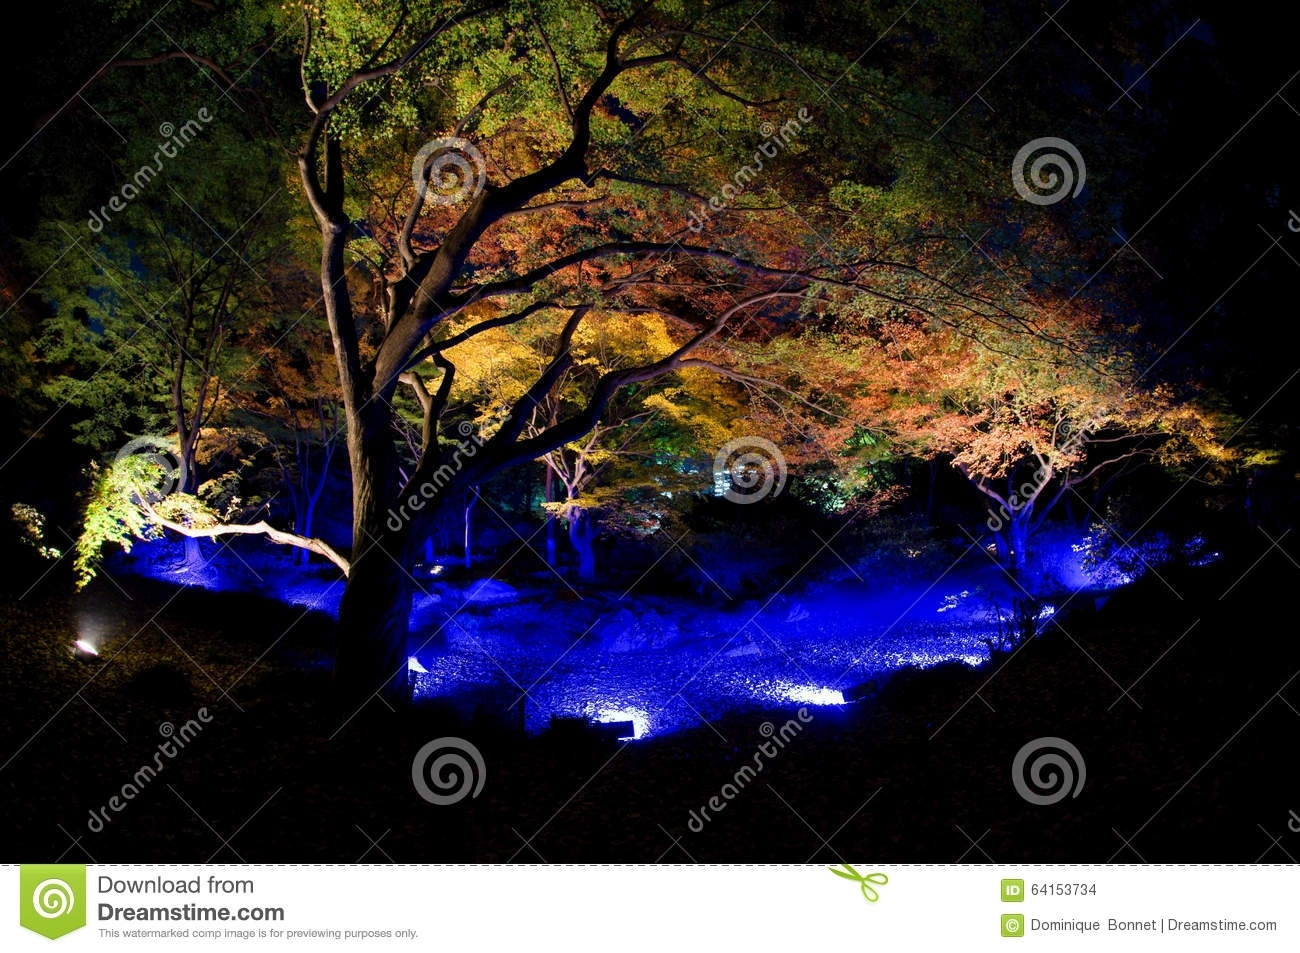 Rikugien Gardens Light Up Stock Photo - Image: 64153734 pertaining to Rikugien Garden Autumn Light Up